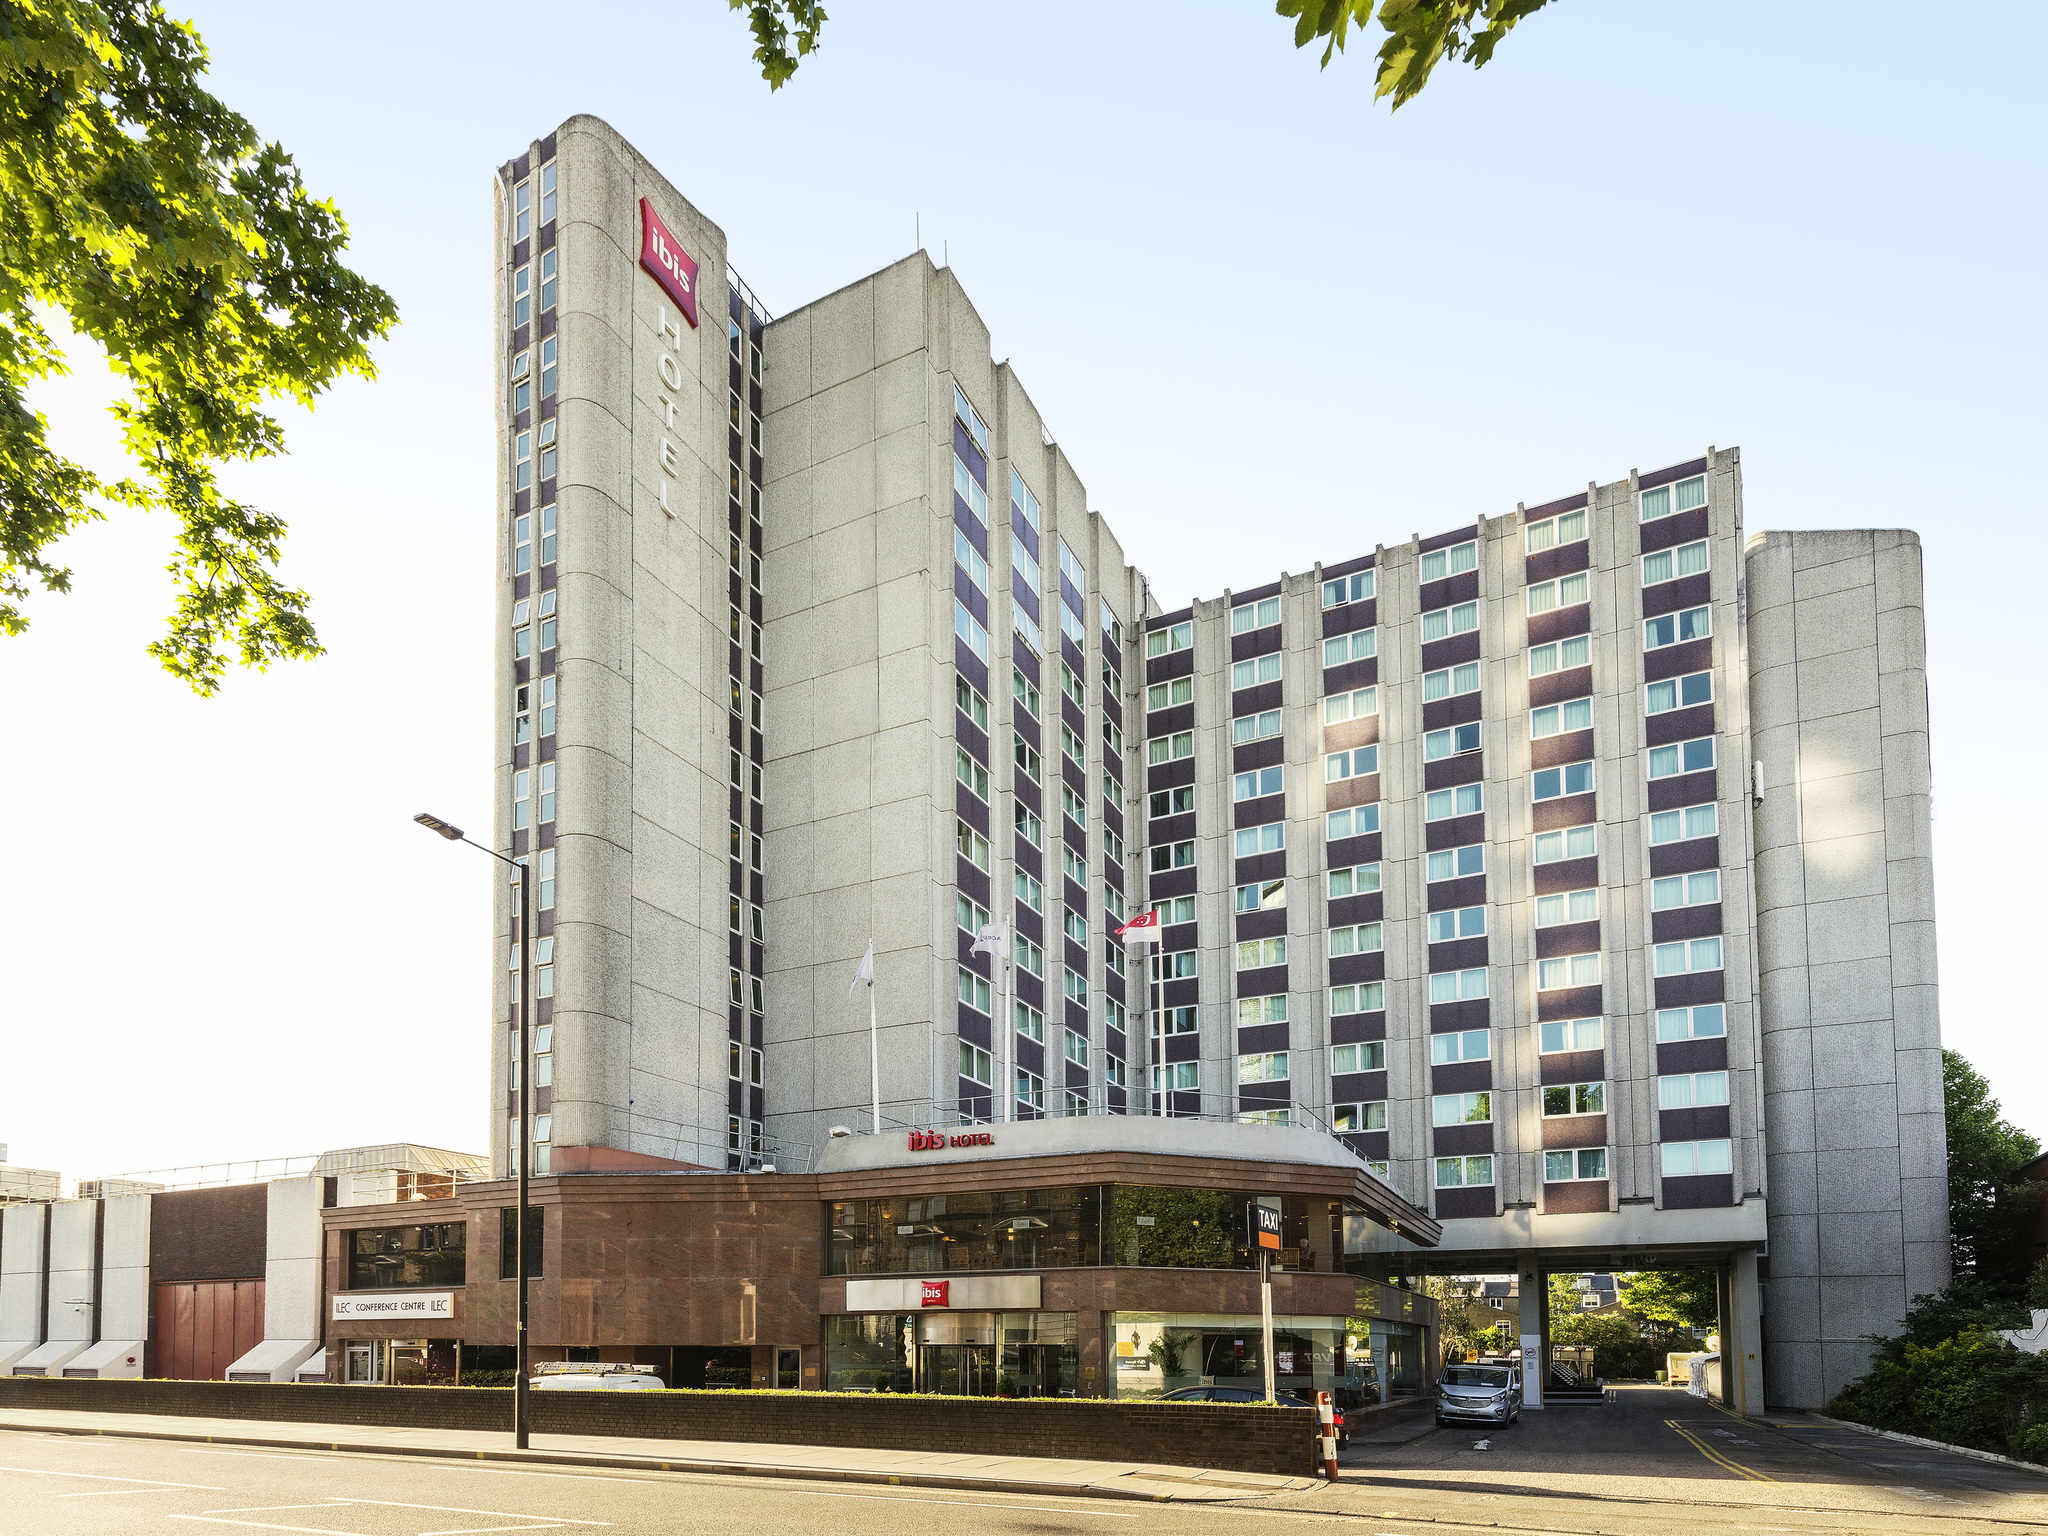 Hotel – ibis London Earls Court